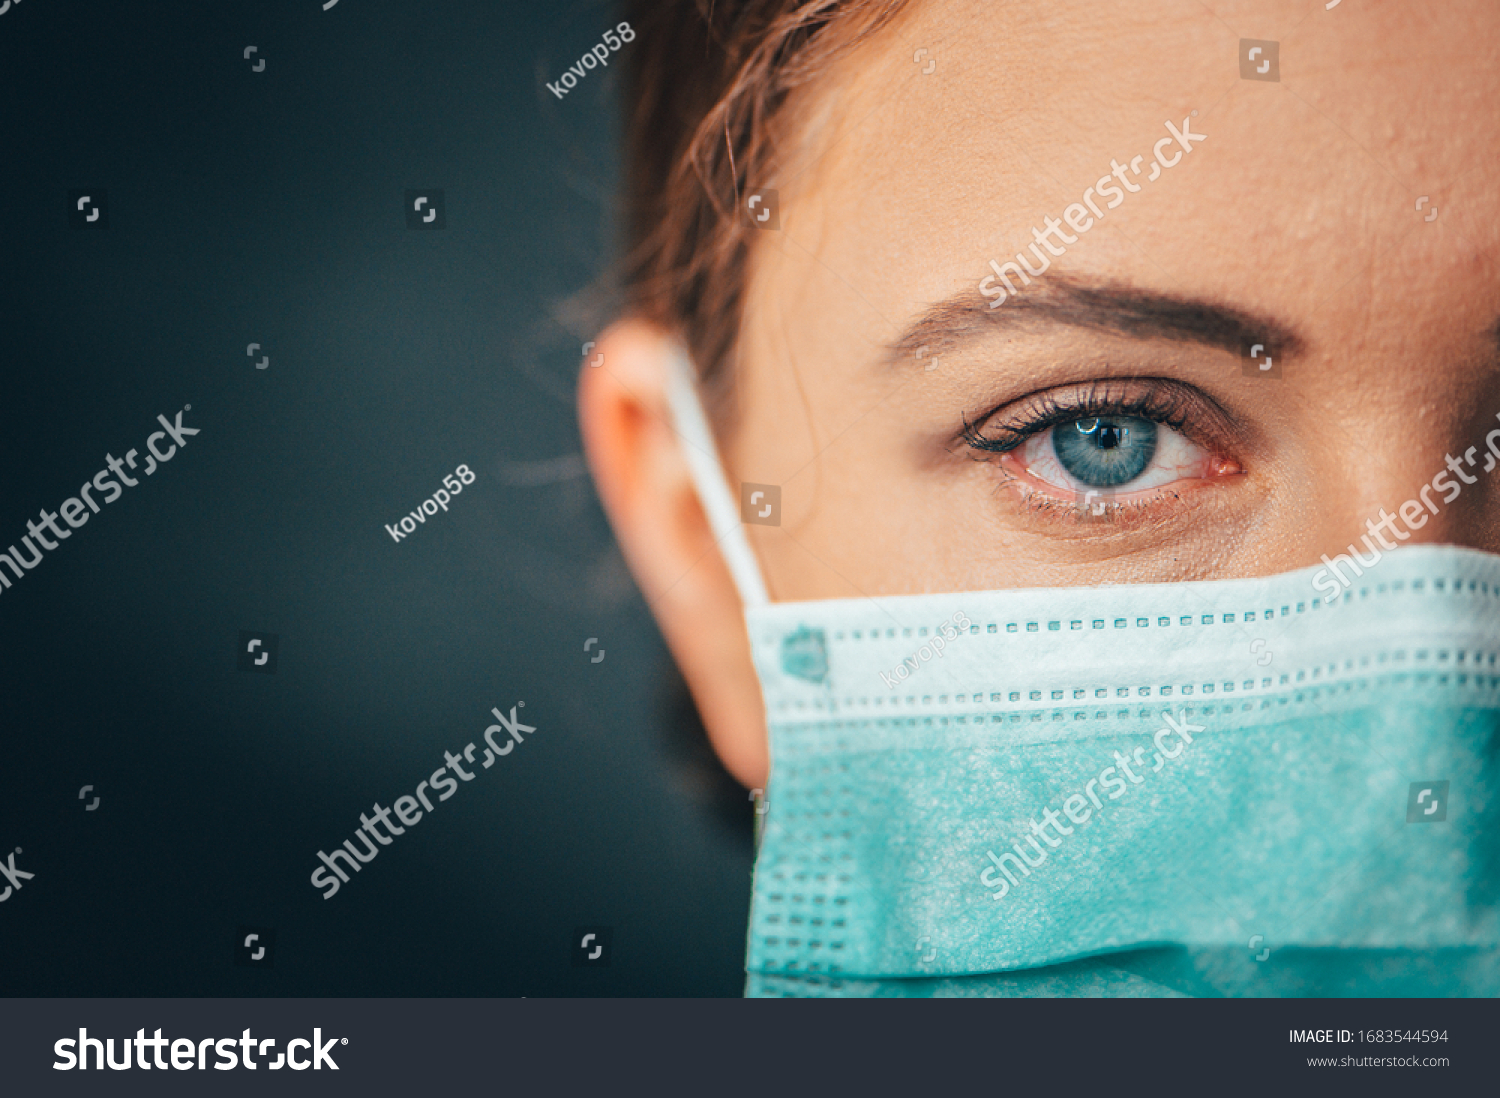 Close up portrait photo, Eye of Yong Female Doctor. Protection against contagious disease, coronavirus, hygienic face surgical medical mask to prevent infection. Black background #1683544594